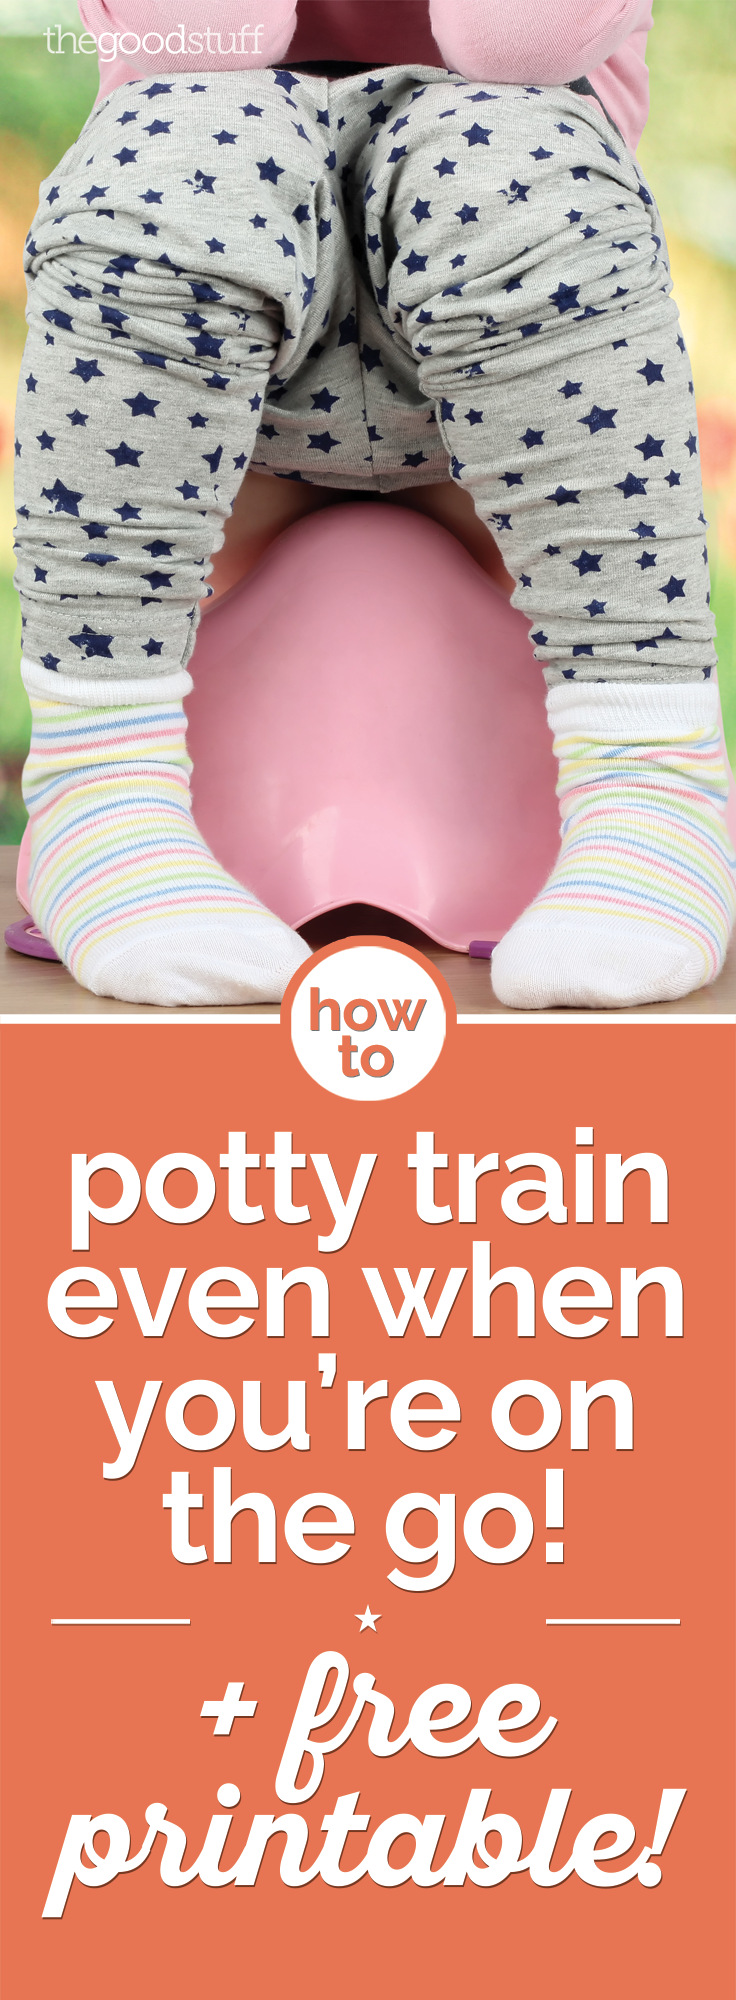 How to Potty Train Even When You're on the Go + Free Printable! | thegoodstuff